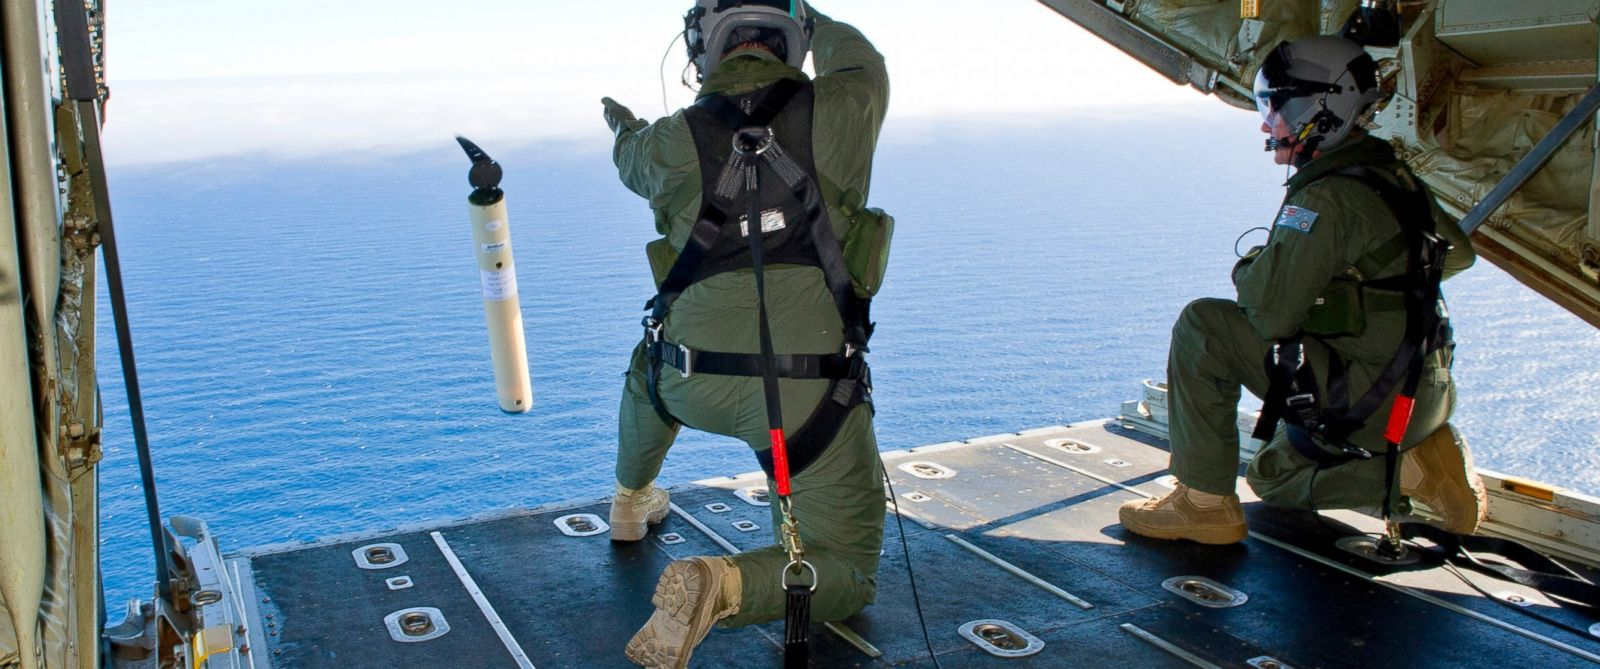 PHOTO: Members of the Royal Australian Air Force launch a Self Locating Data Marker Buoy from a C-130J Hercules aircraft in the southern Indian Ocean as part of the Australian Defense Forces assistance to the search for Malaysia Airlines flight MH370.